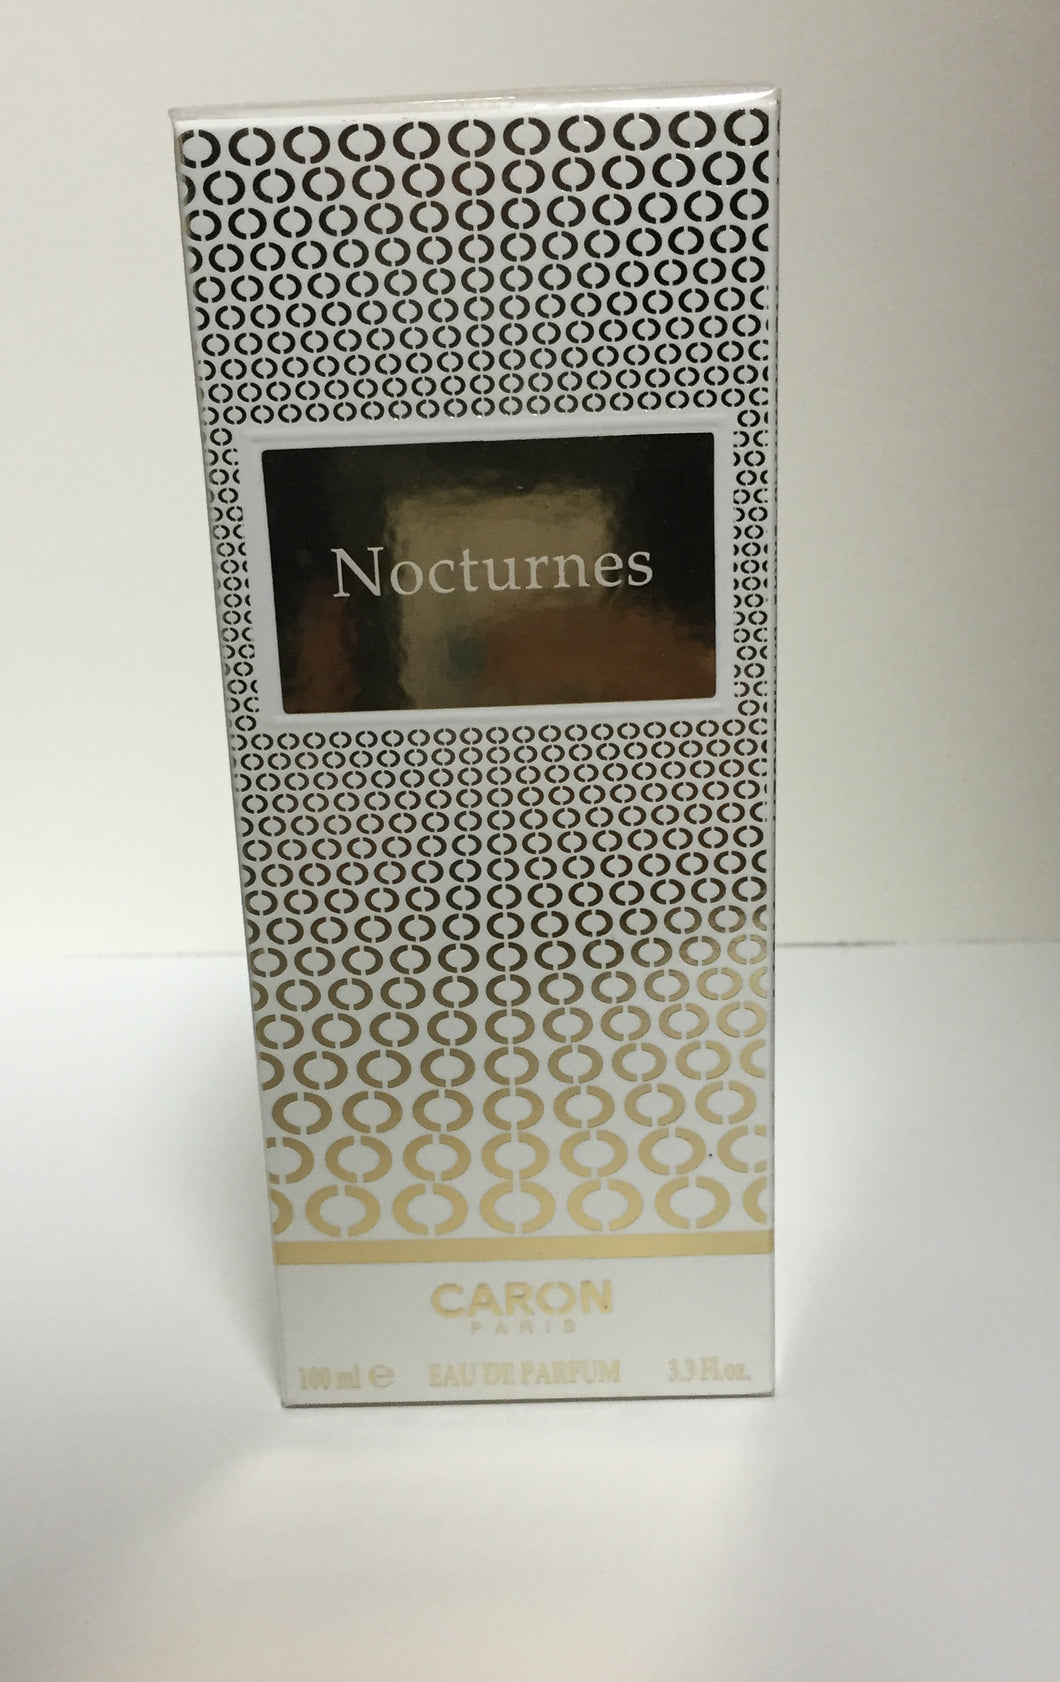 Nocturnes by Caron Edp 3.4oz Spray